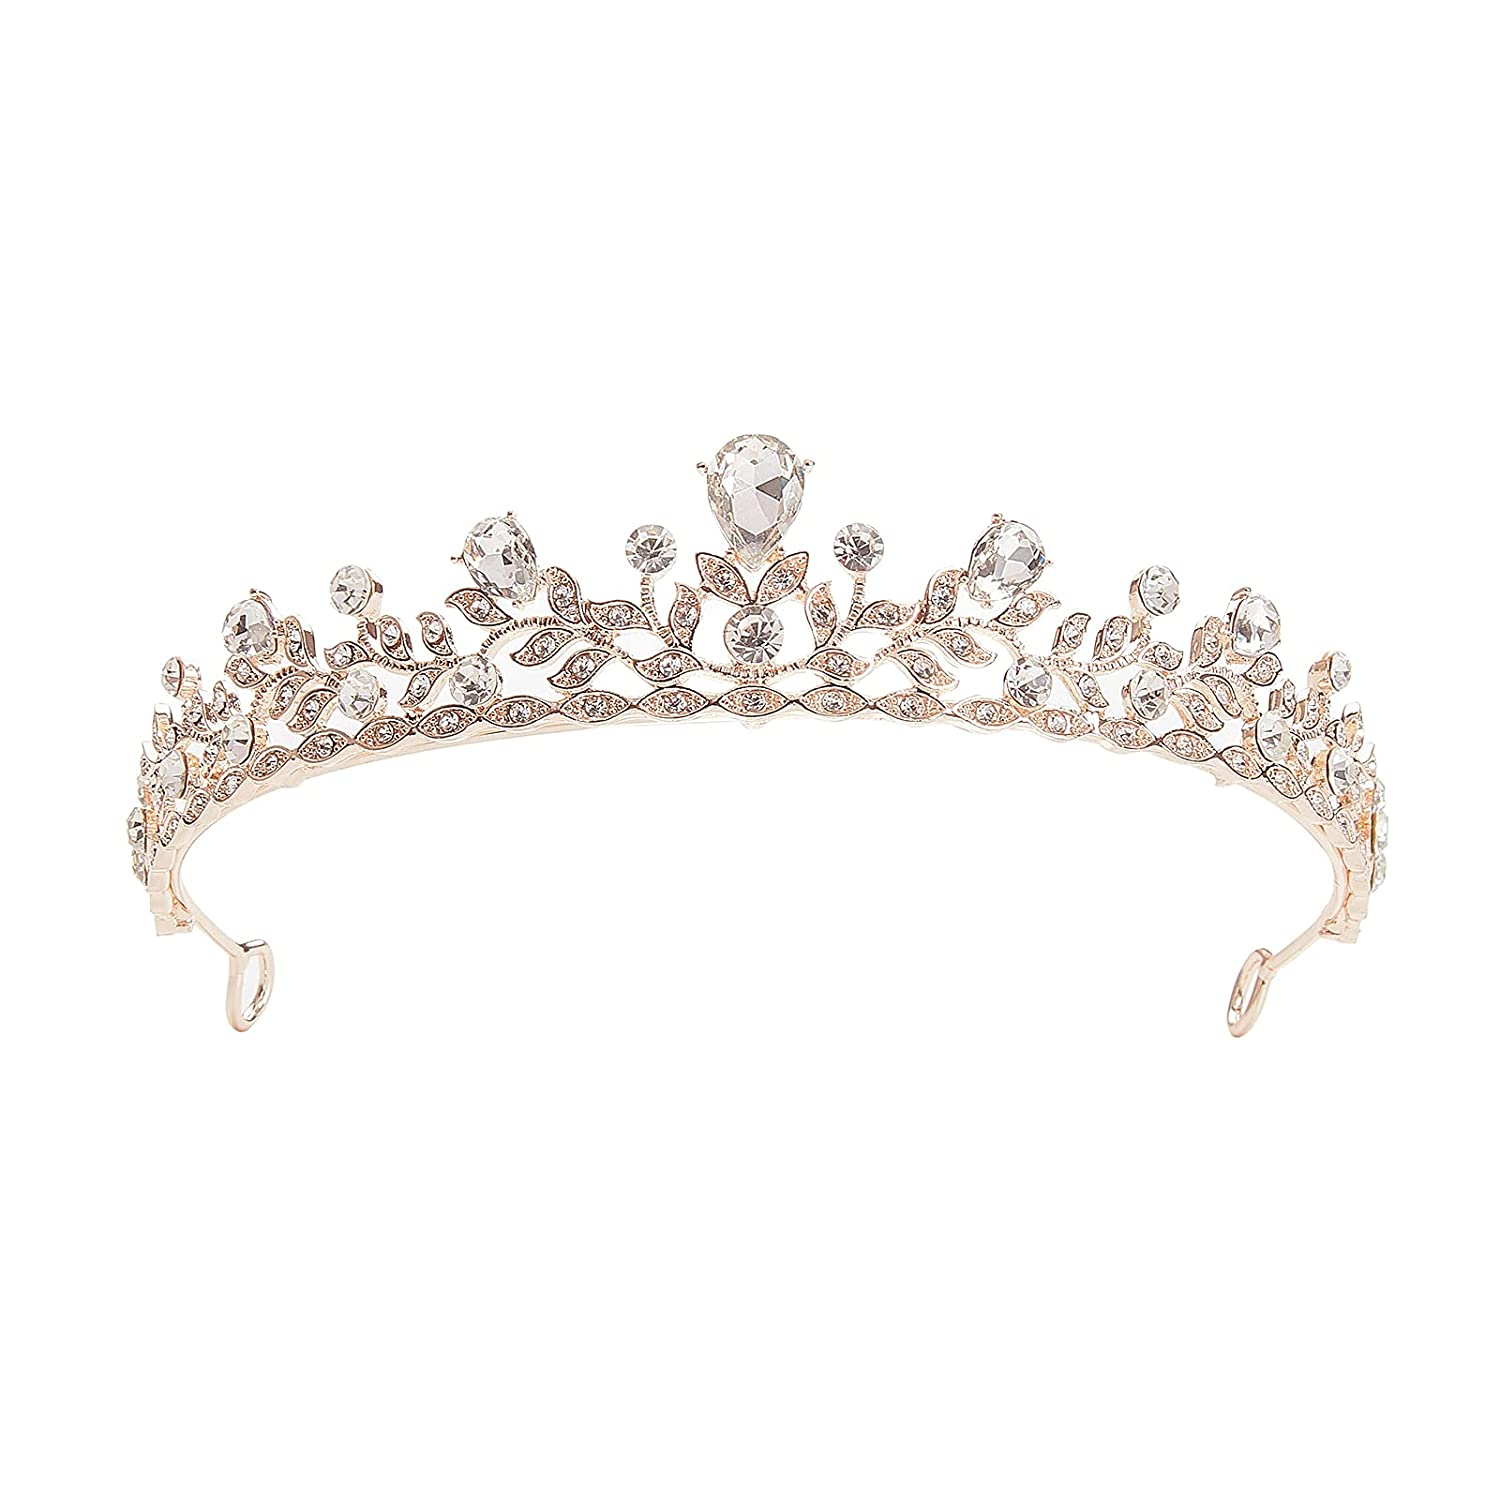 SH Rose Gold Max 60% OFF Wedding Tiara for and Super Special SALE held Princess Girls Crowns Women